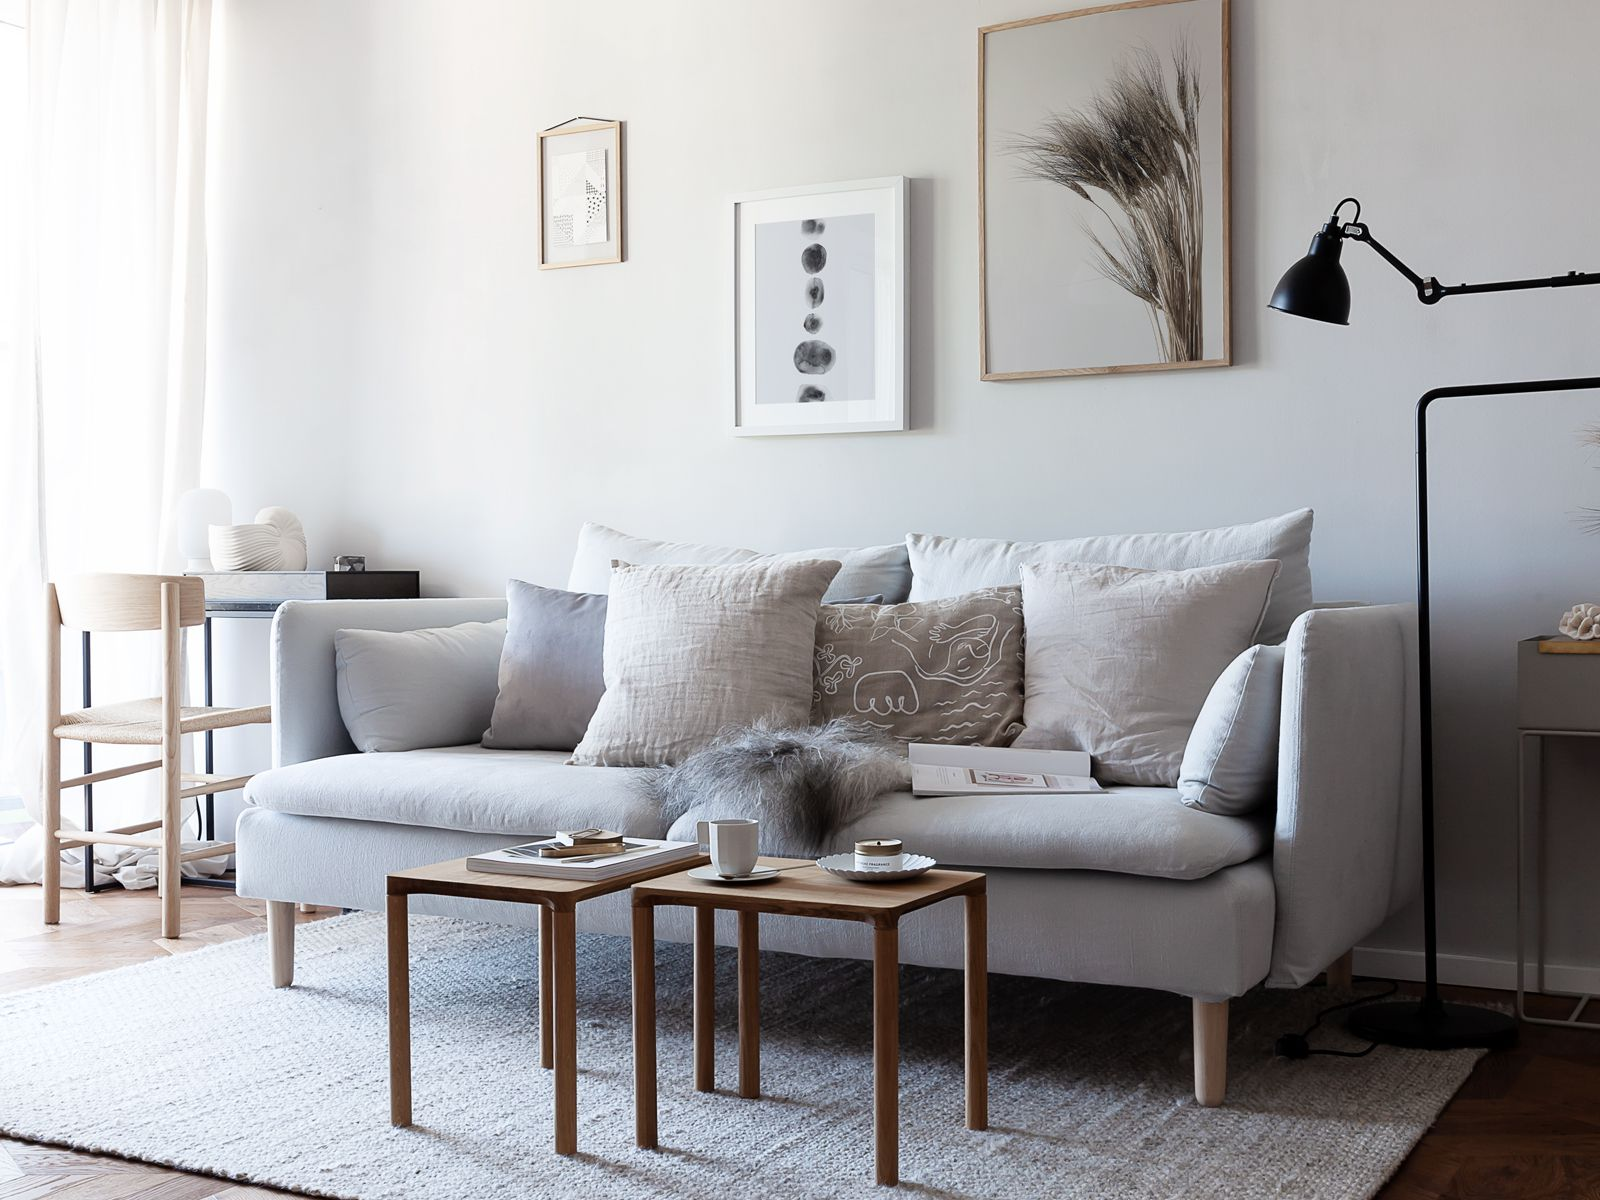 Interior Designers Predict the Biggest Home Trends of 2020